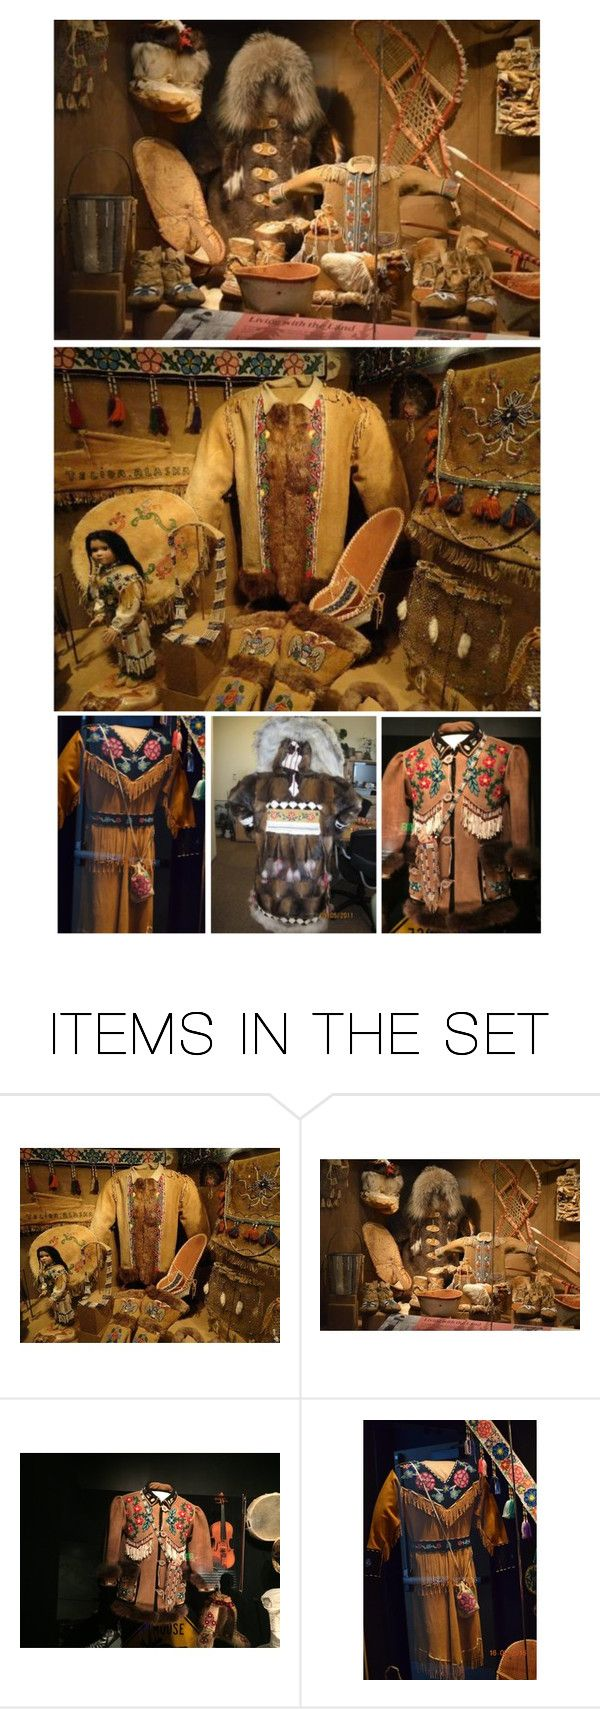 """There Were Displays of Athabaskan Clothing Made of Moose & Caribou Hide, Beaver Hats & Gloves, Muskrat Parkas, Snowshoes, Baskets & Beadwork"" by maggie-johnston ❤ liked on Polyvore featuring art"